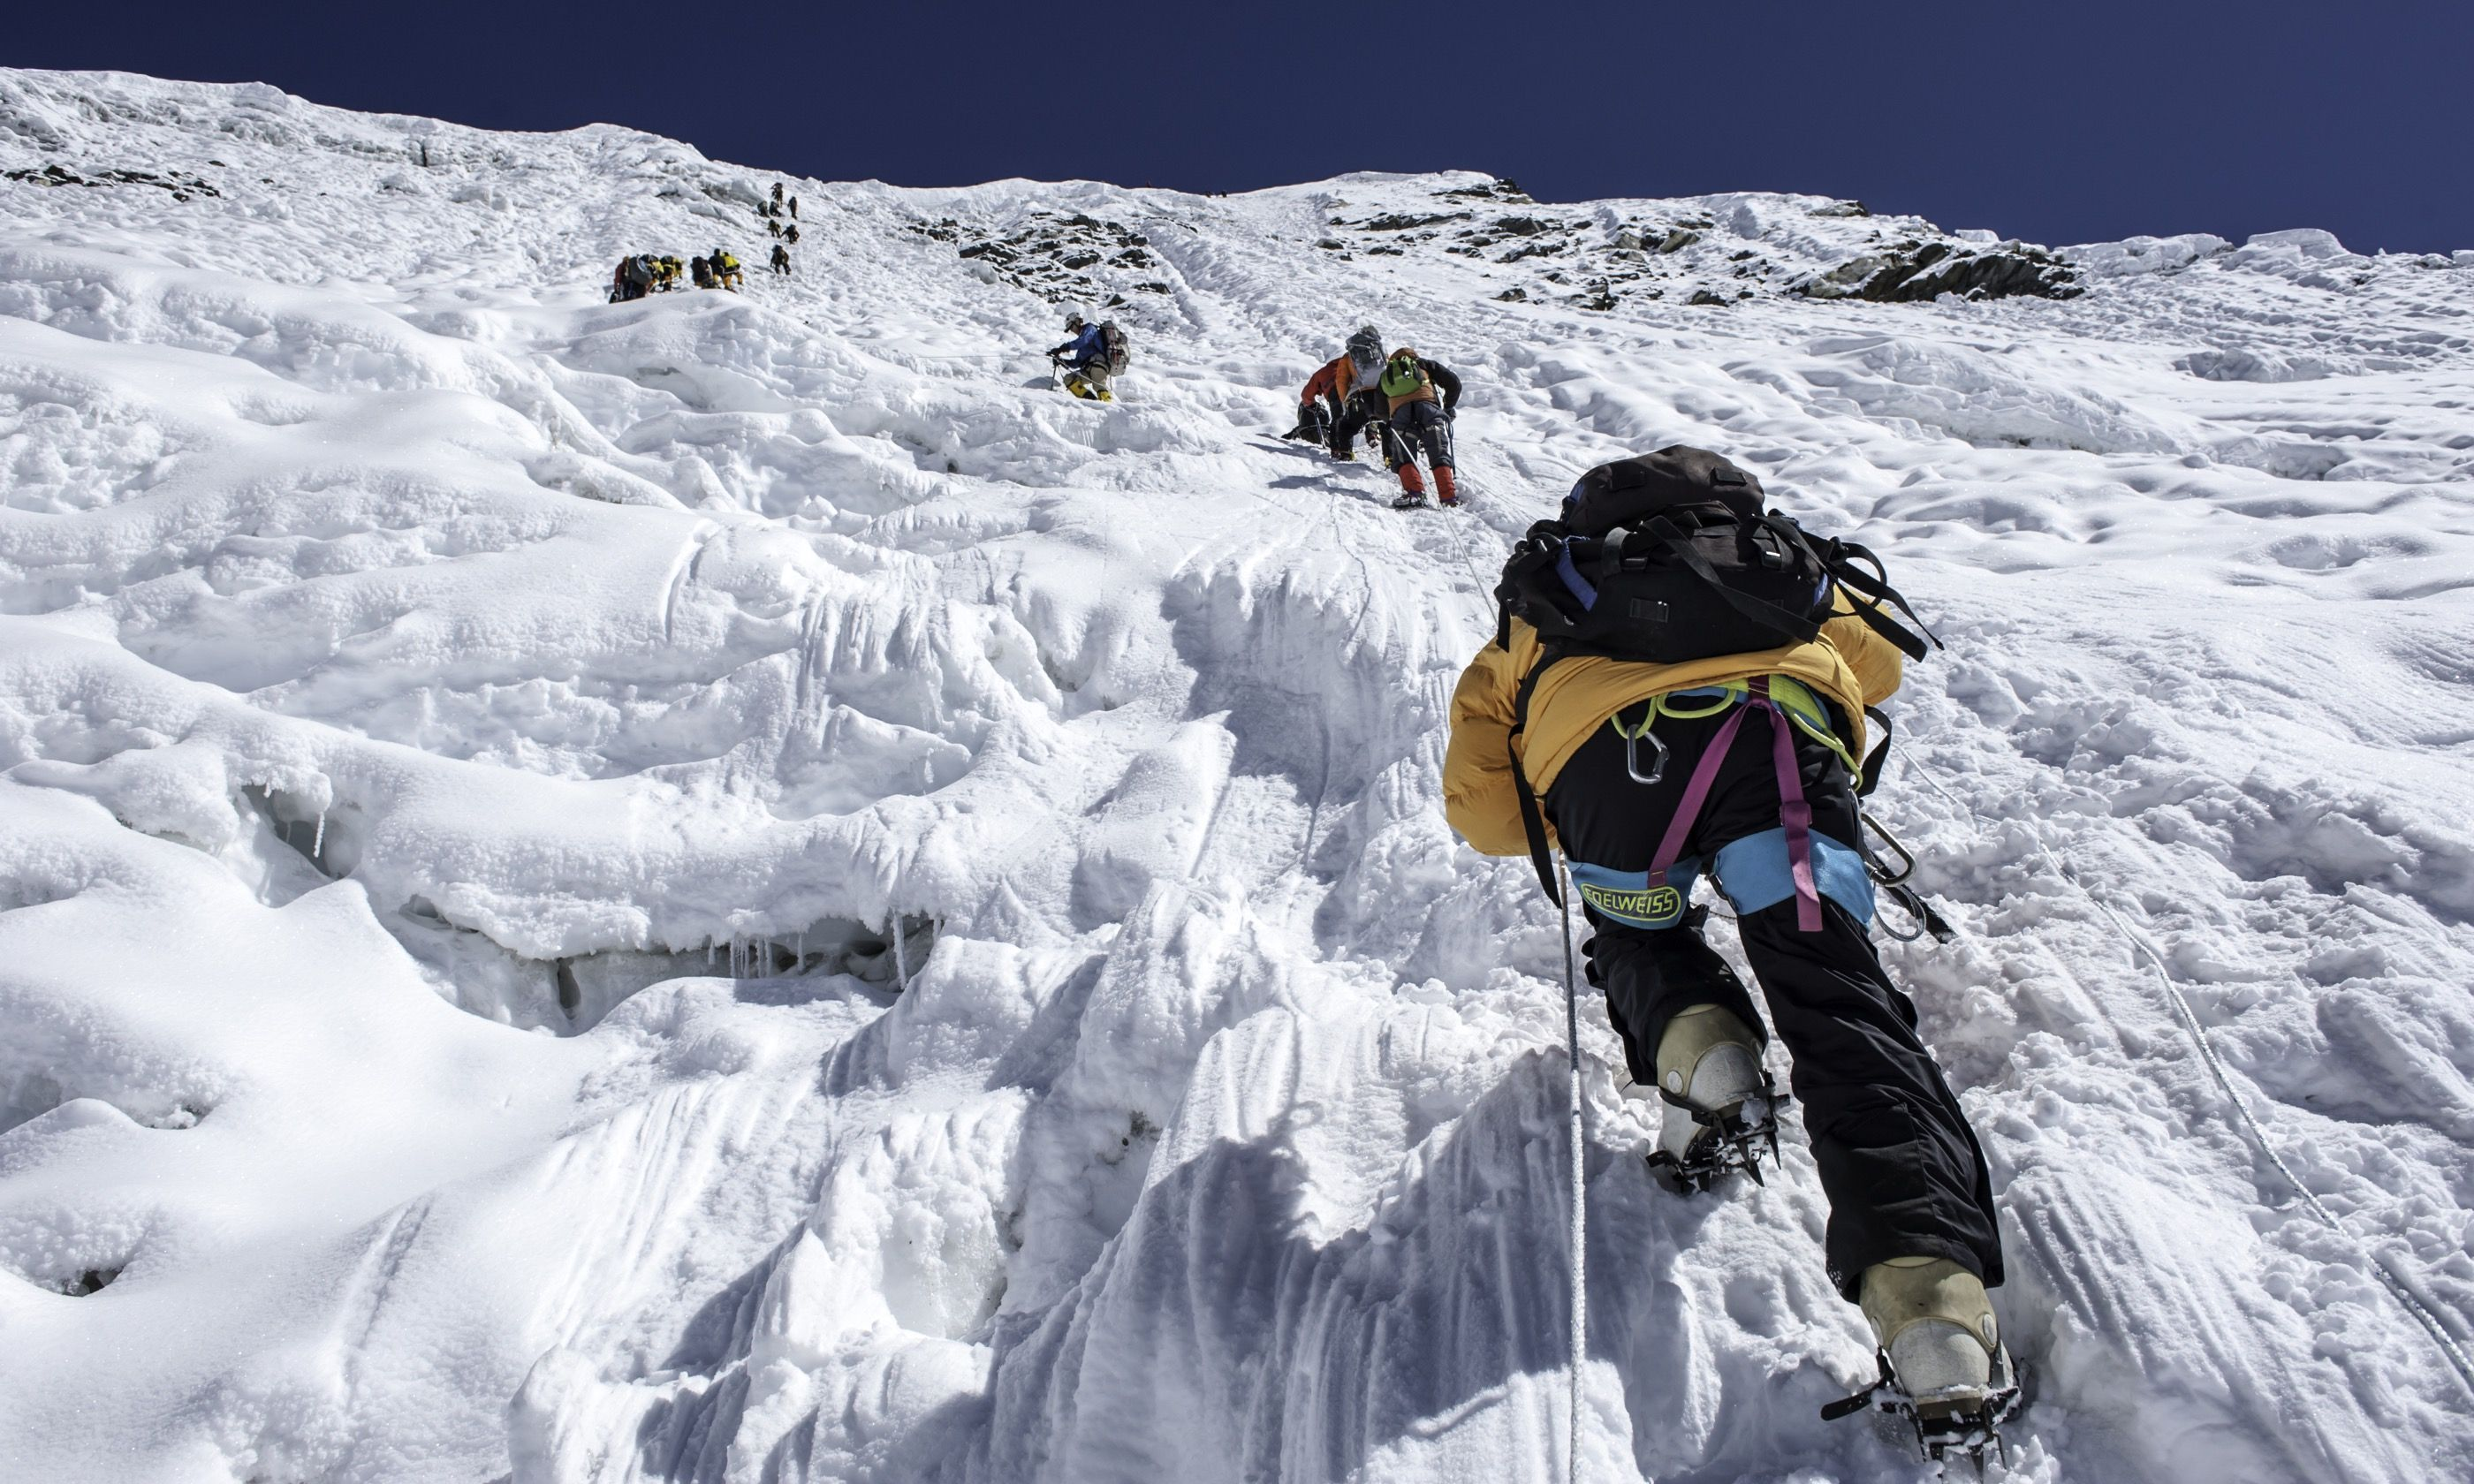 Climbing with ice pics (Shutterstock.com)